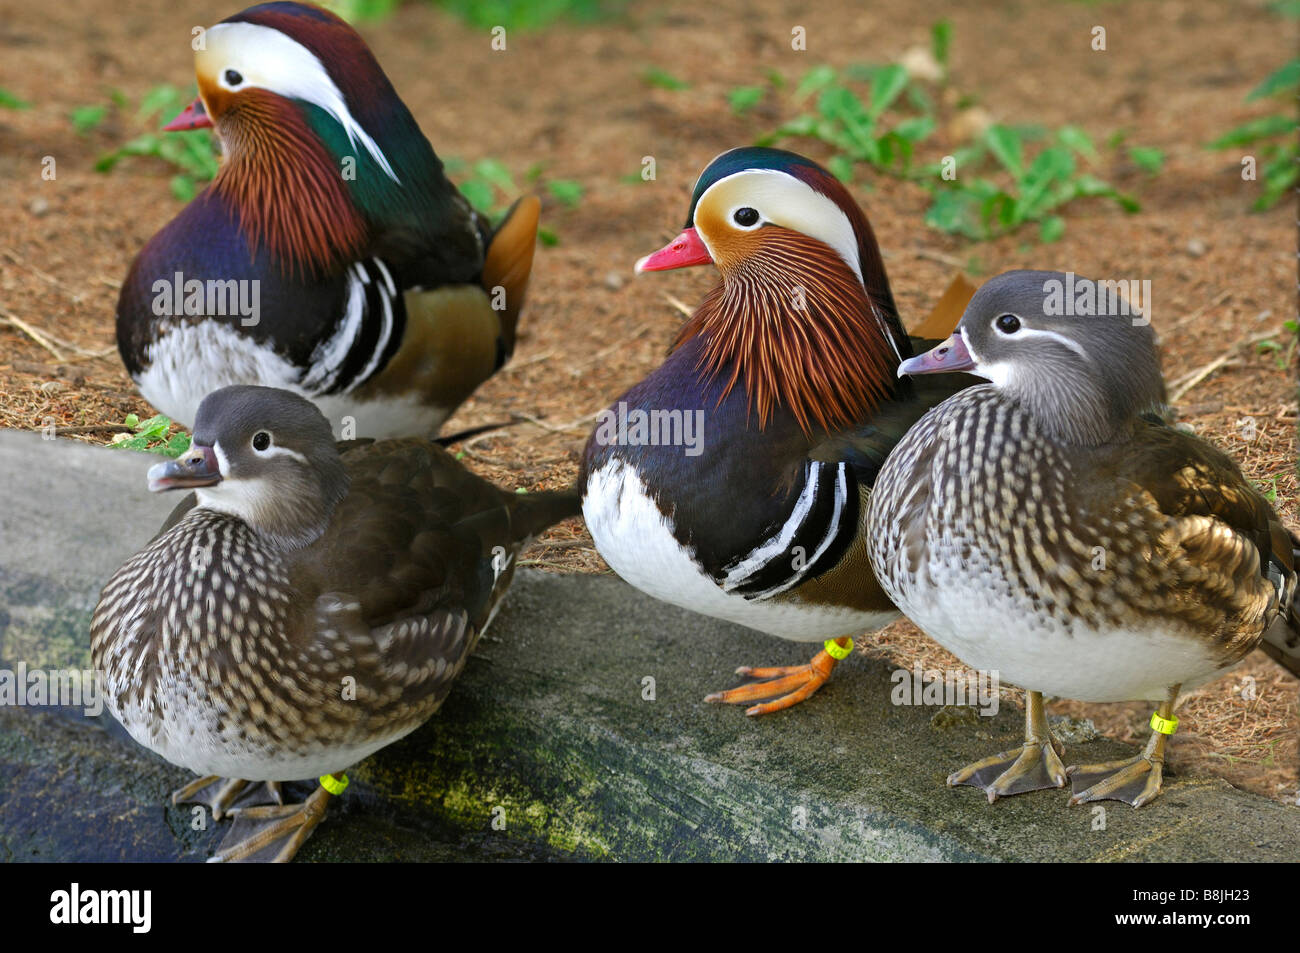 Male and female Mandarin Ducks, Aix galericulata - Stock Image